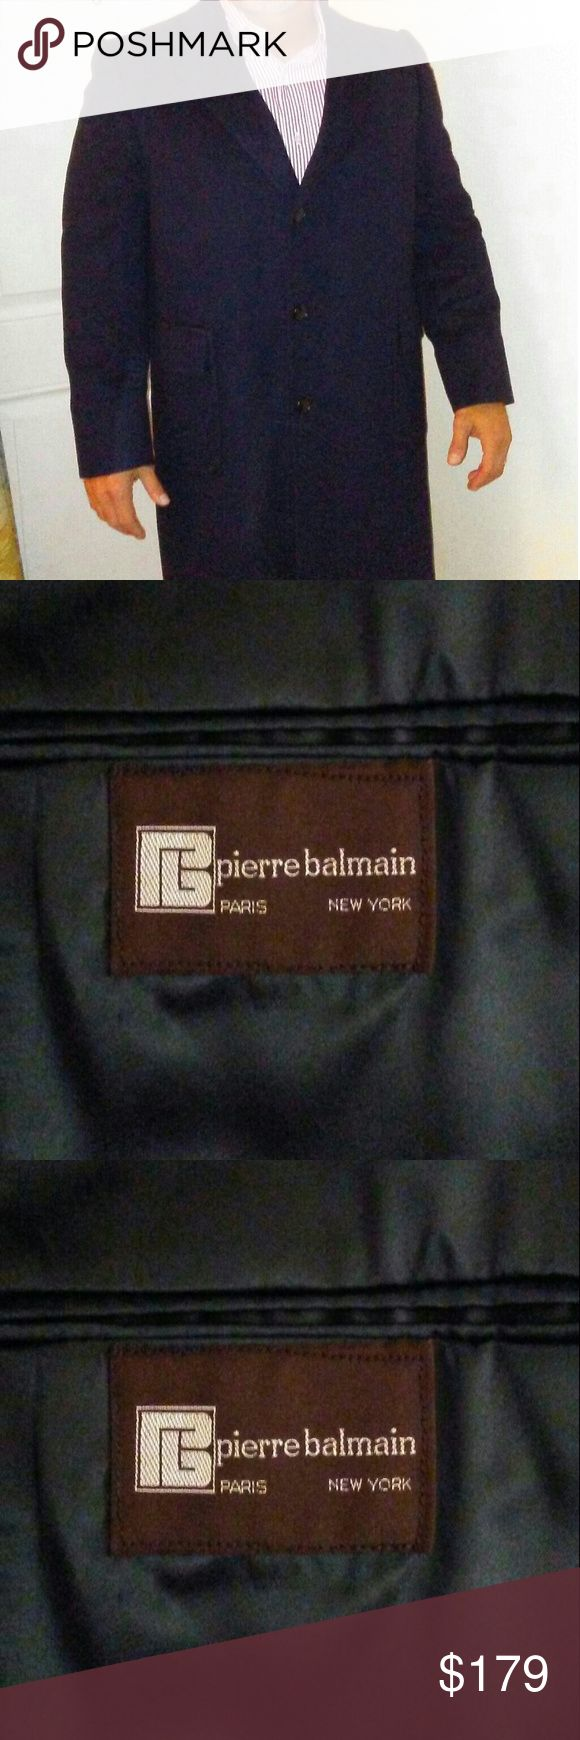 Balmain Cashmere Overcoat Balmain Overcoat navy blue single breasted 3 button not sure if this is 100% casmere or a blend but it is a great overcoat in excellent preowned condition letting this quality Balmain coat go on a super cheap end of season deal Balmain Jackets & Coats Trench Coats